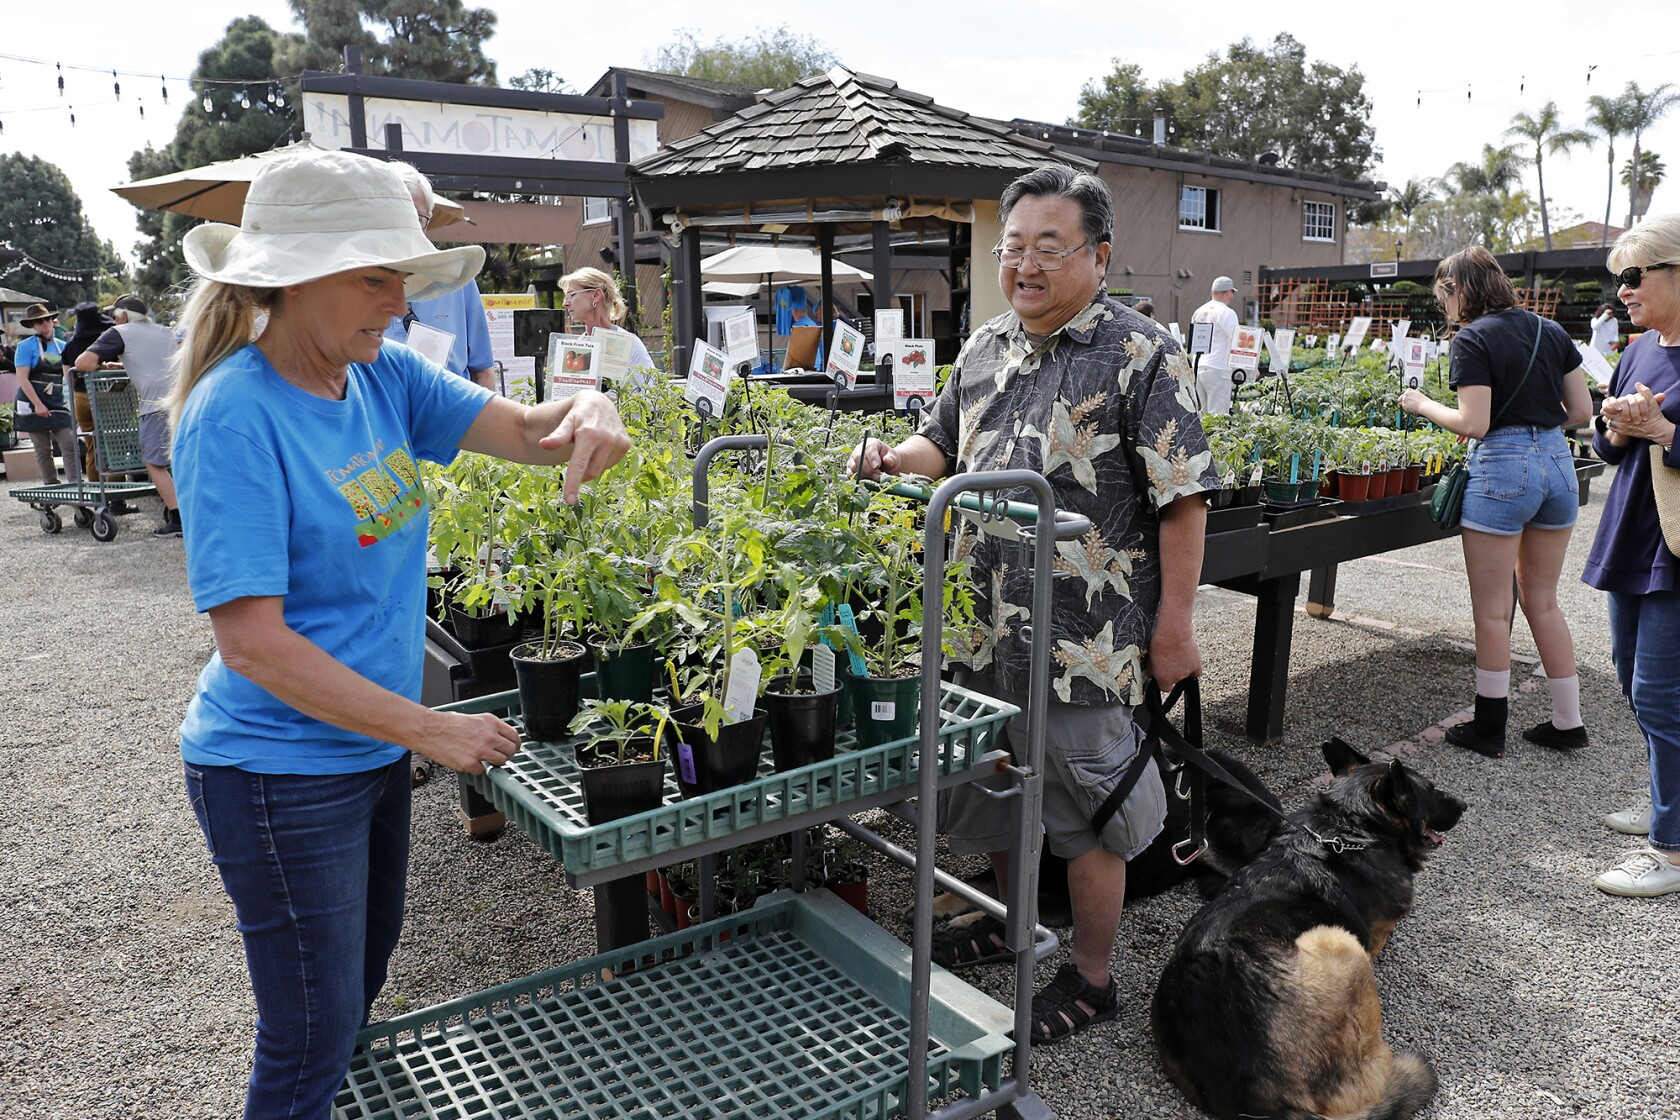 Tomatomaniacs welcome at Roger's Gardens plant sale